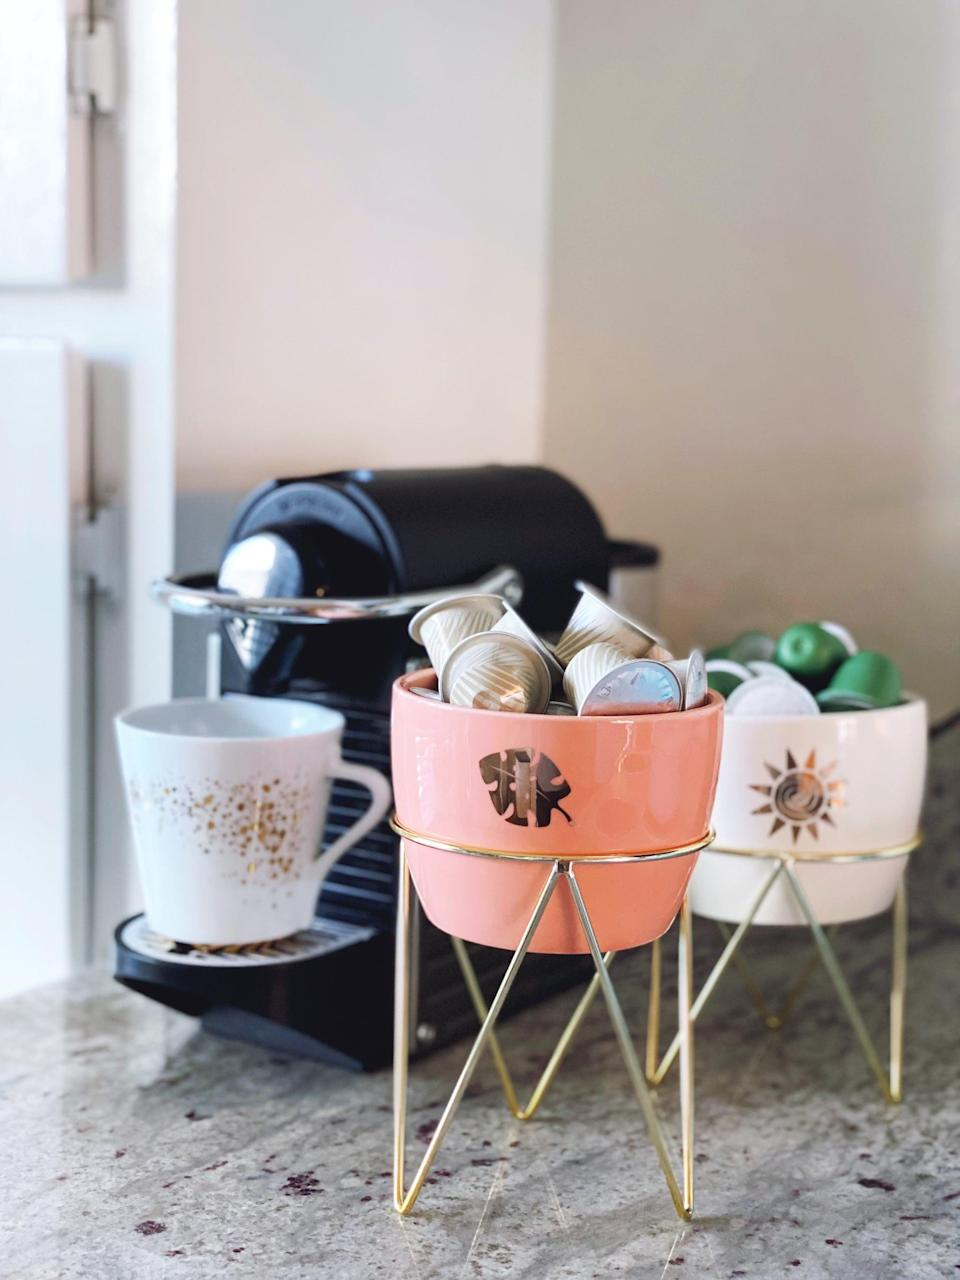 <p>I can't survive a day without my morning coffee, and the <span>Disney Princess X POPSUGAR Moana Planters</span> ($25 for three) are perfect for holding Nespresso capsules. I can put a different blend in each pot to keep them separated.</p>